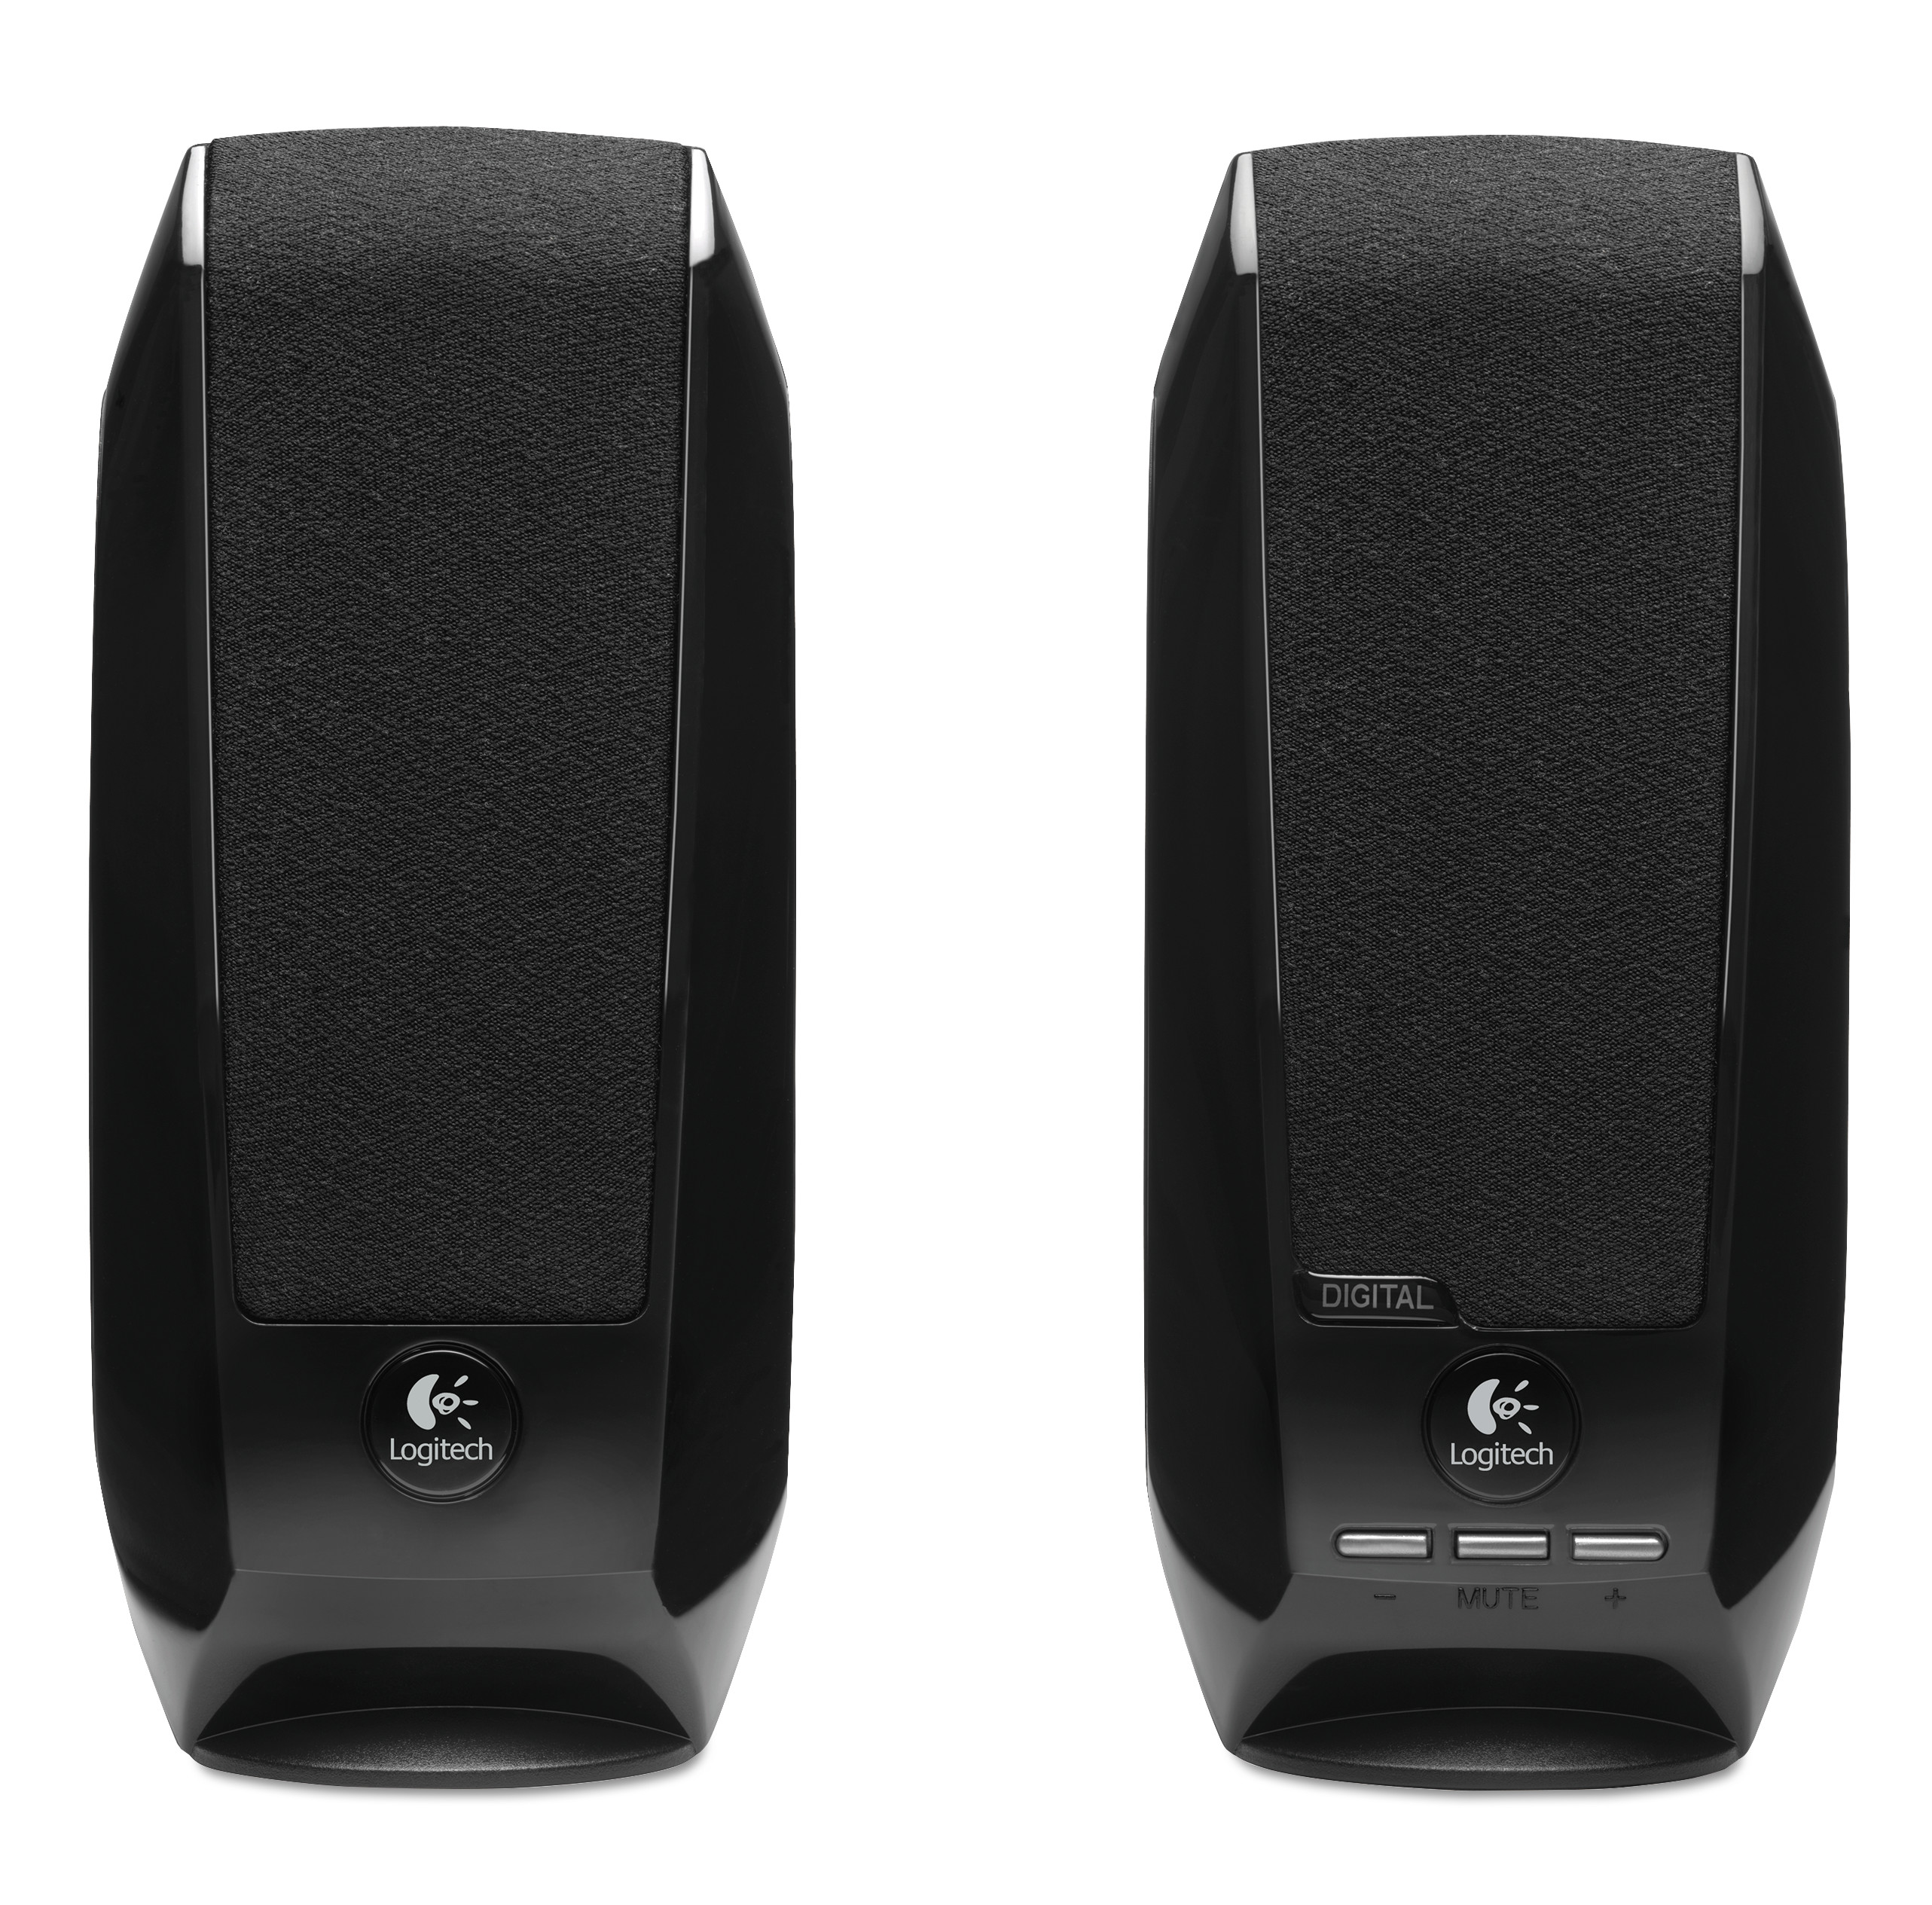 DRIVER FOR S150 DIGITAL USB SPEAKER SYSTEM